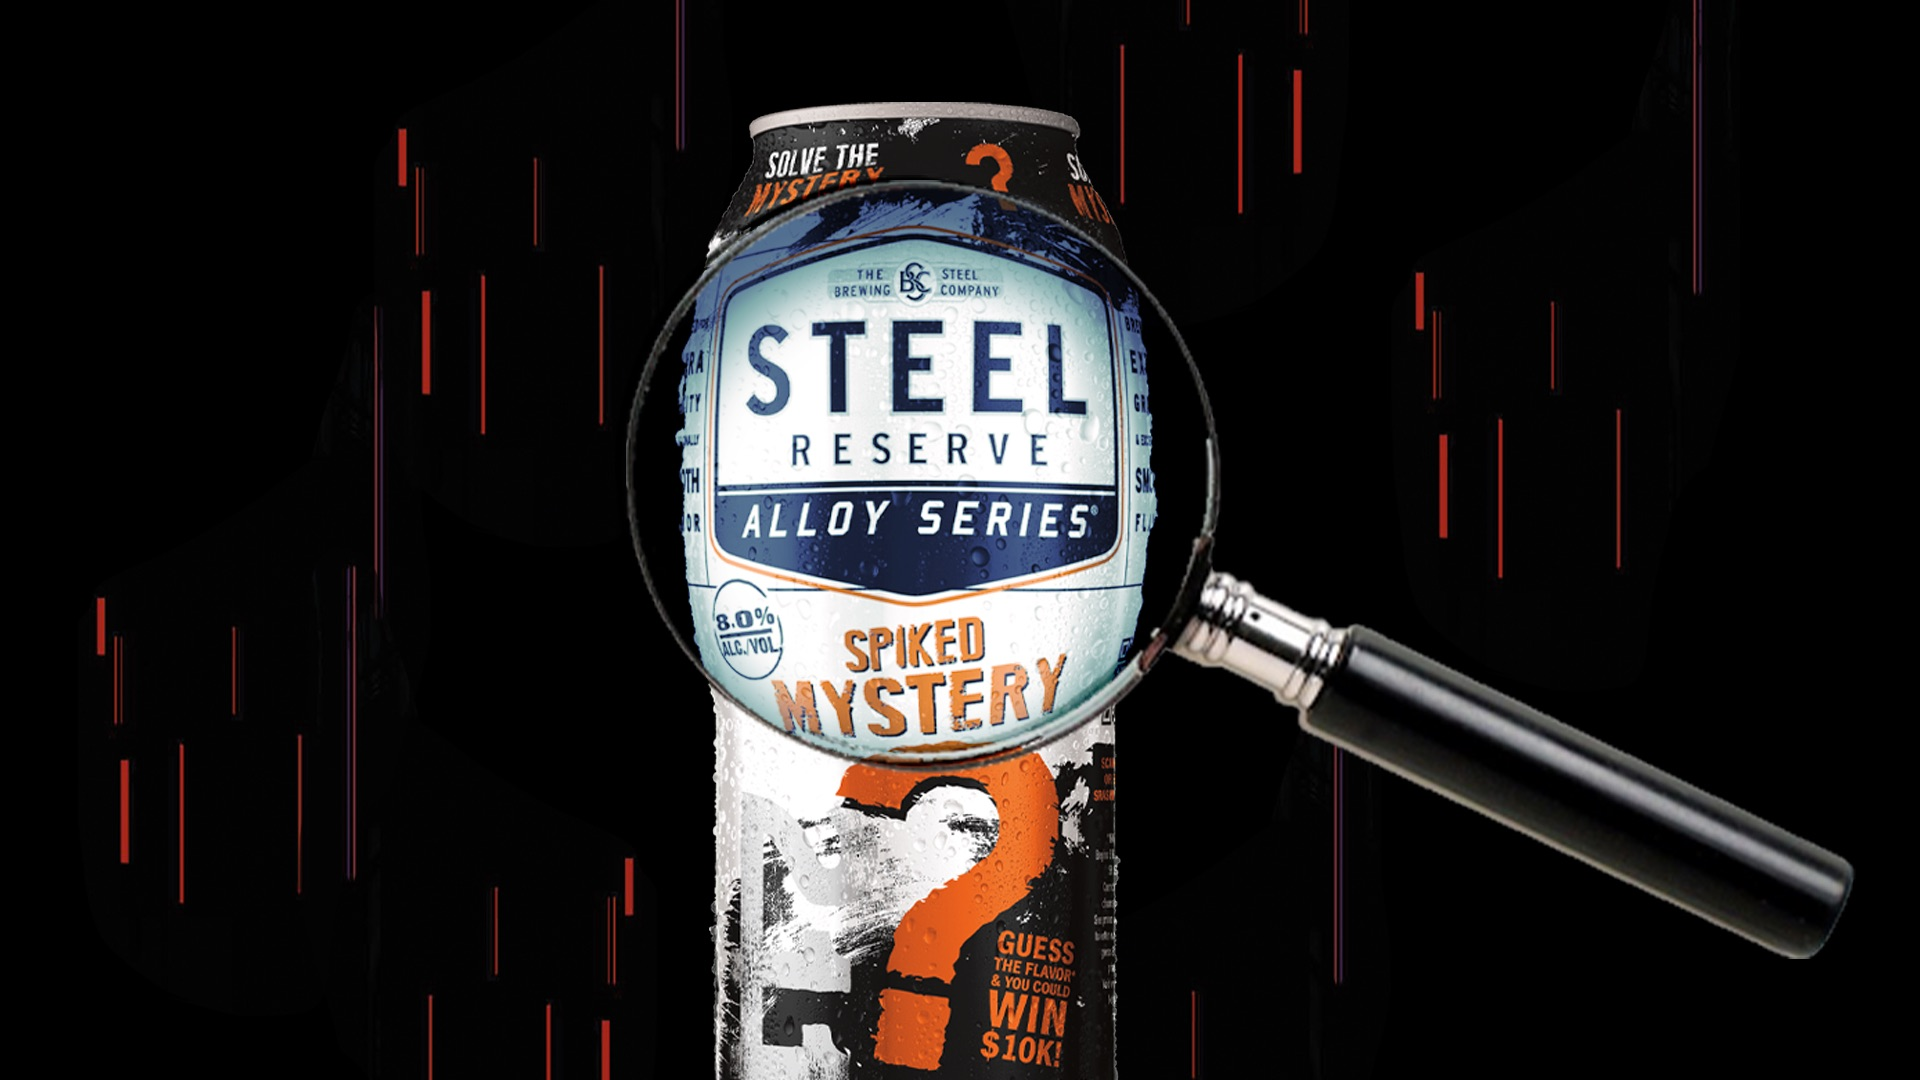 Steel Reserve Alloy Series Mystery Can